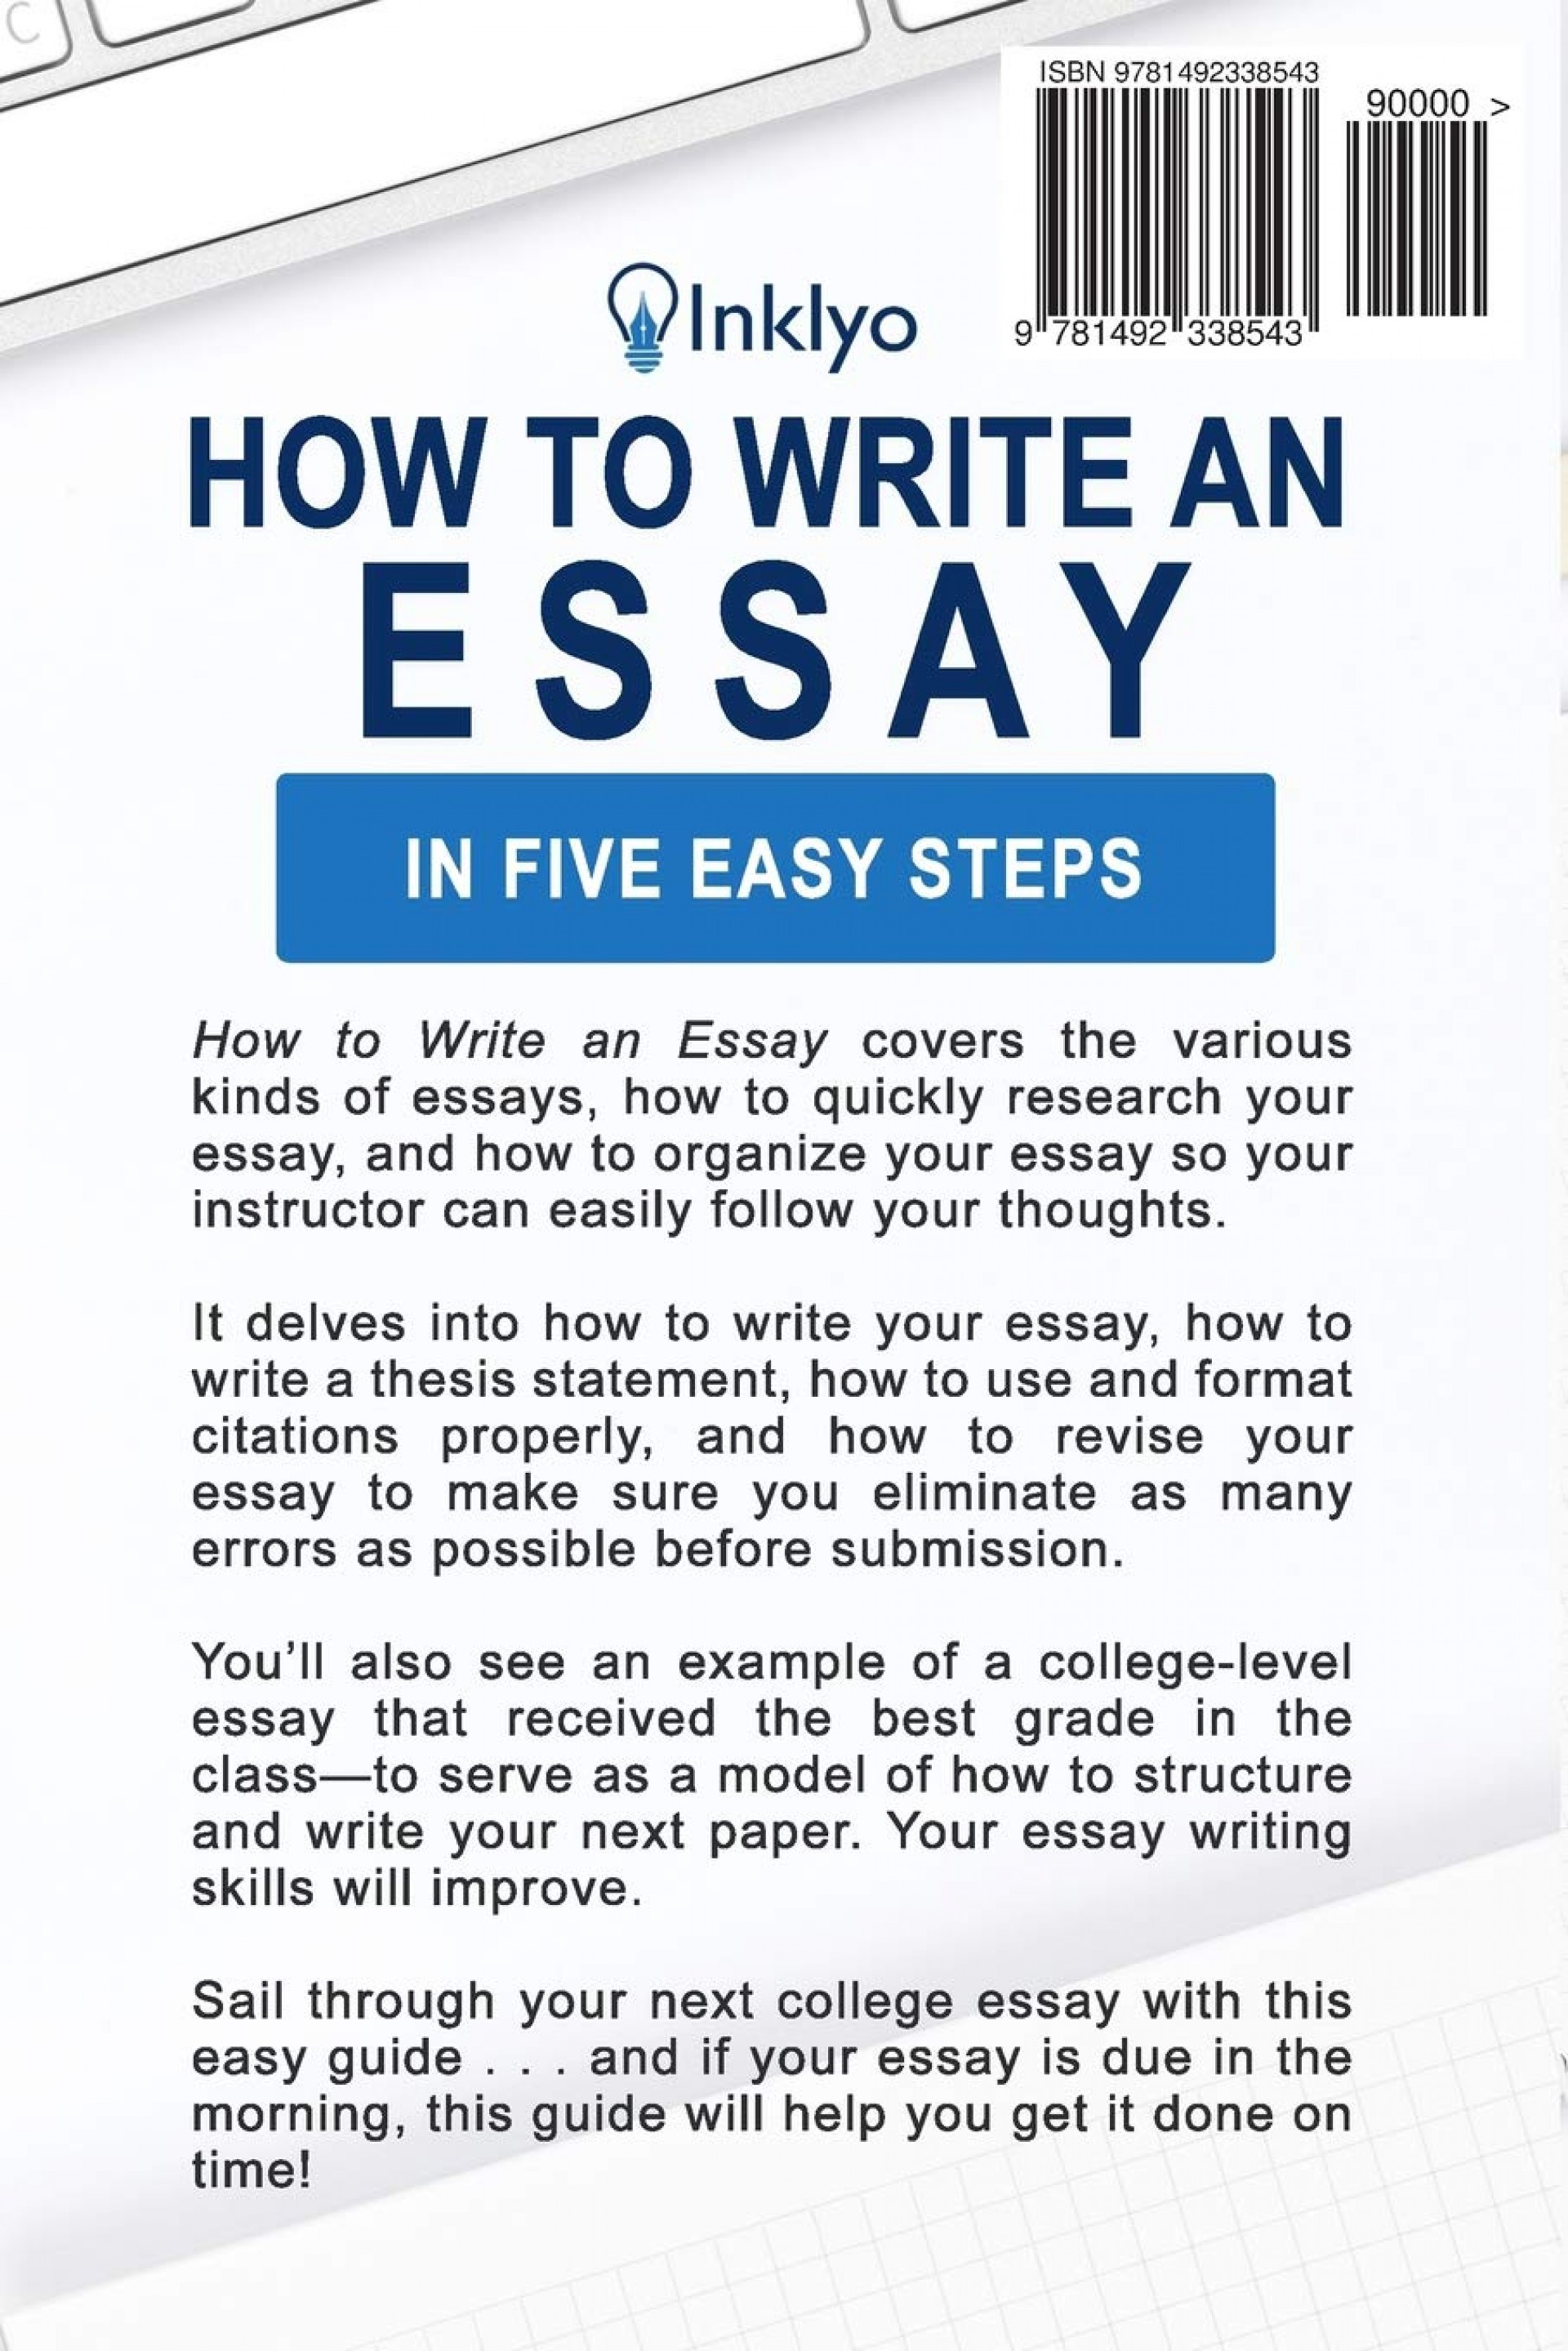 002 How To Write An Essay Example Shocking About Yourself Without Using I For College English Introduction 1920